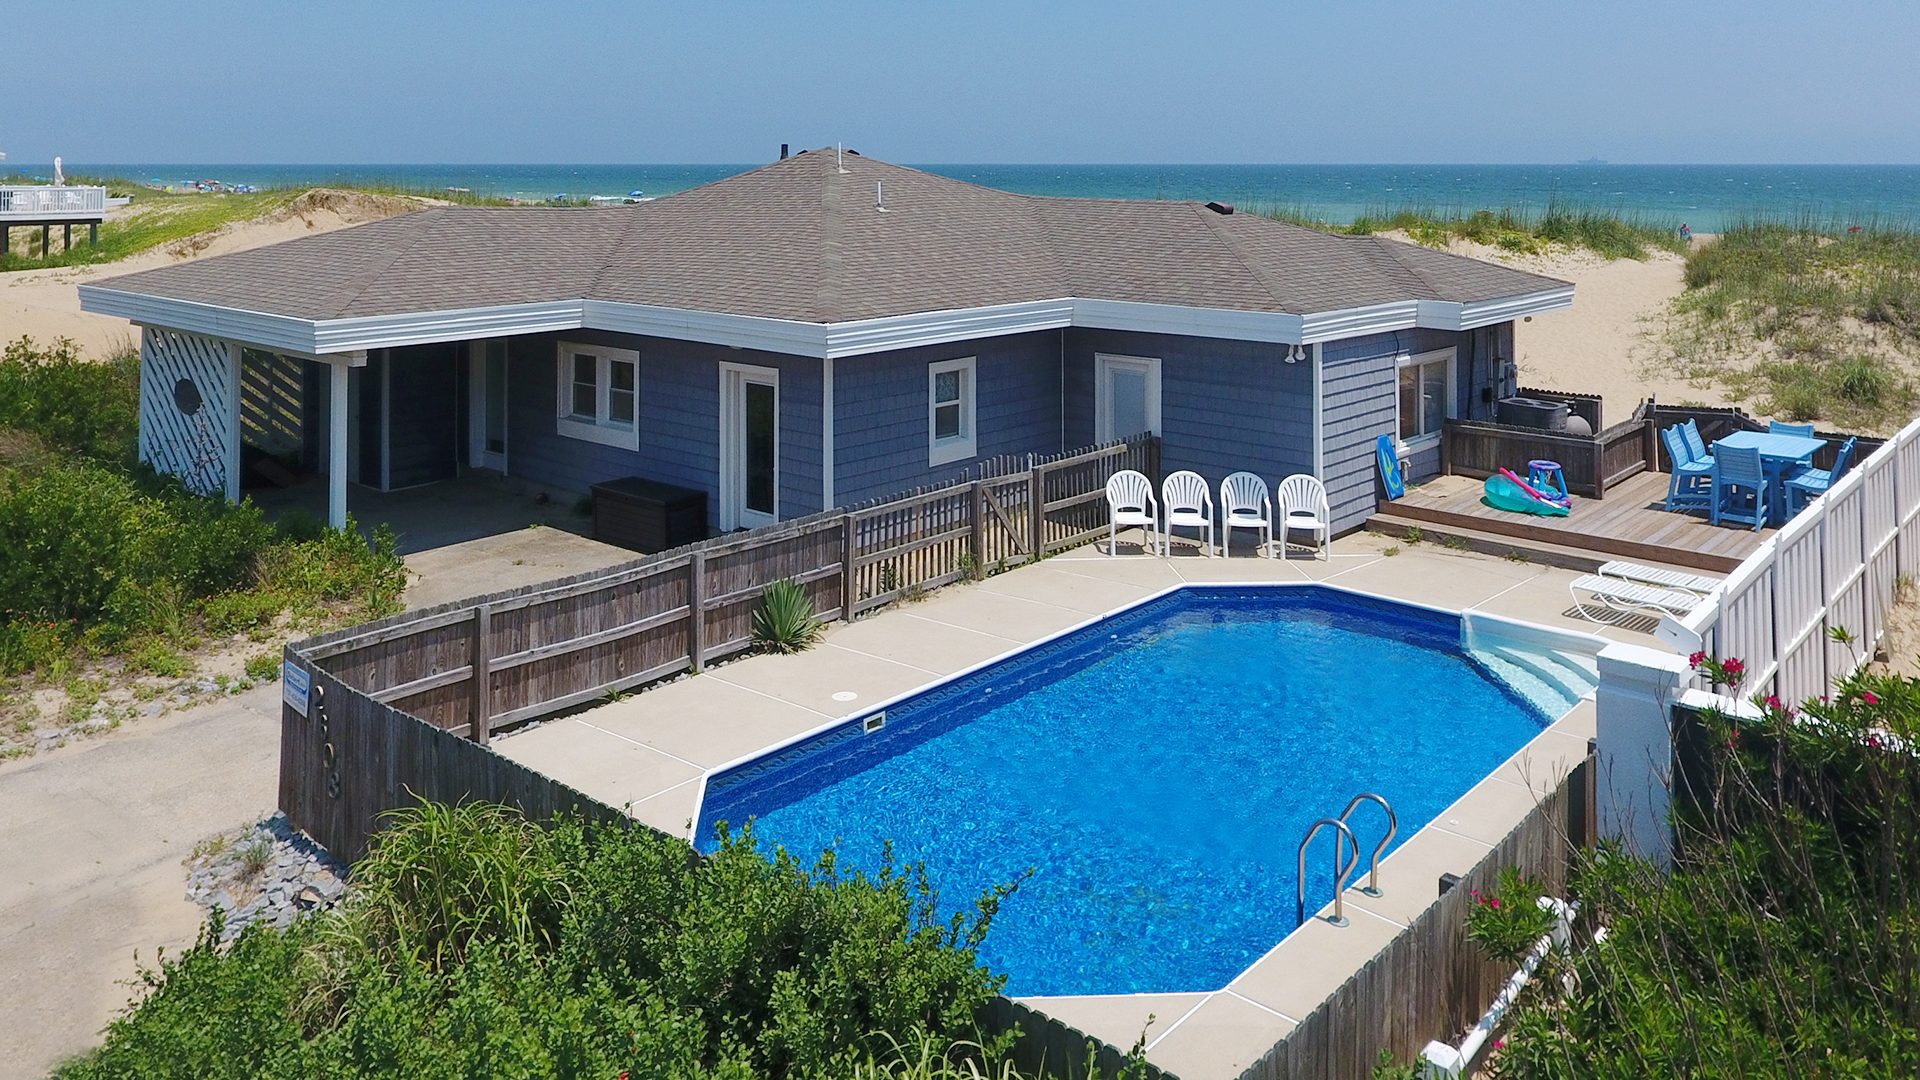 Endless Summer - 4 Bedroom Sandbridge Beach Rental ...